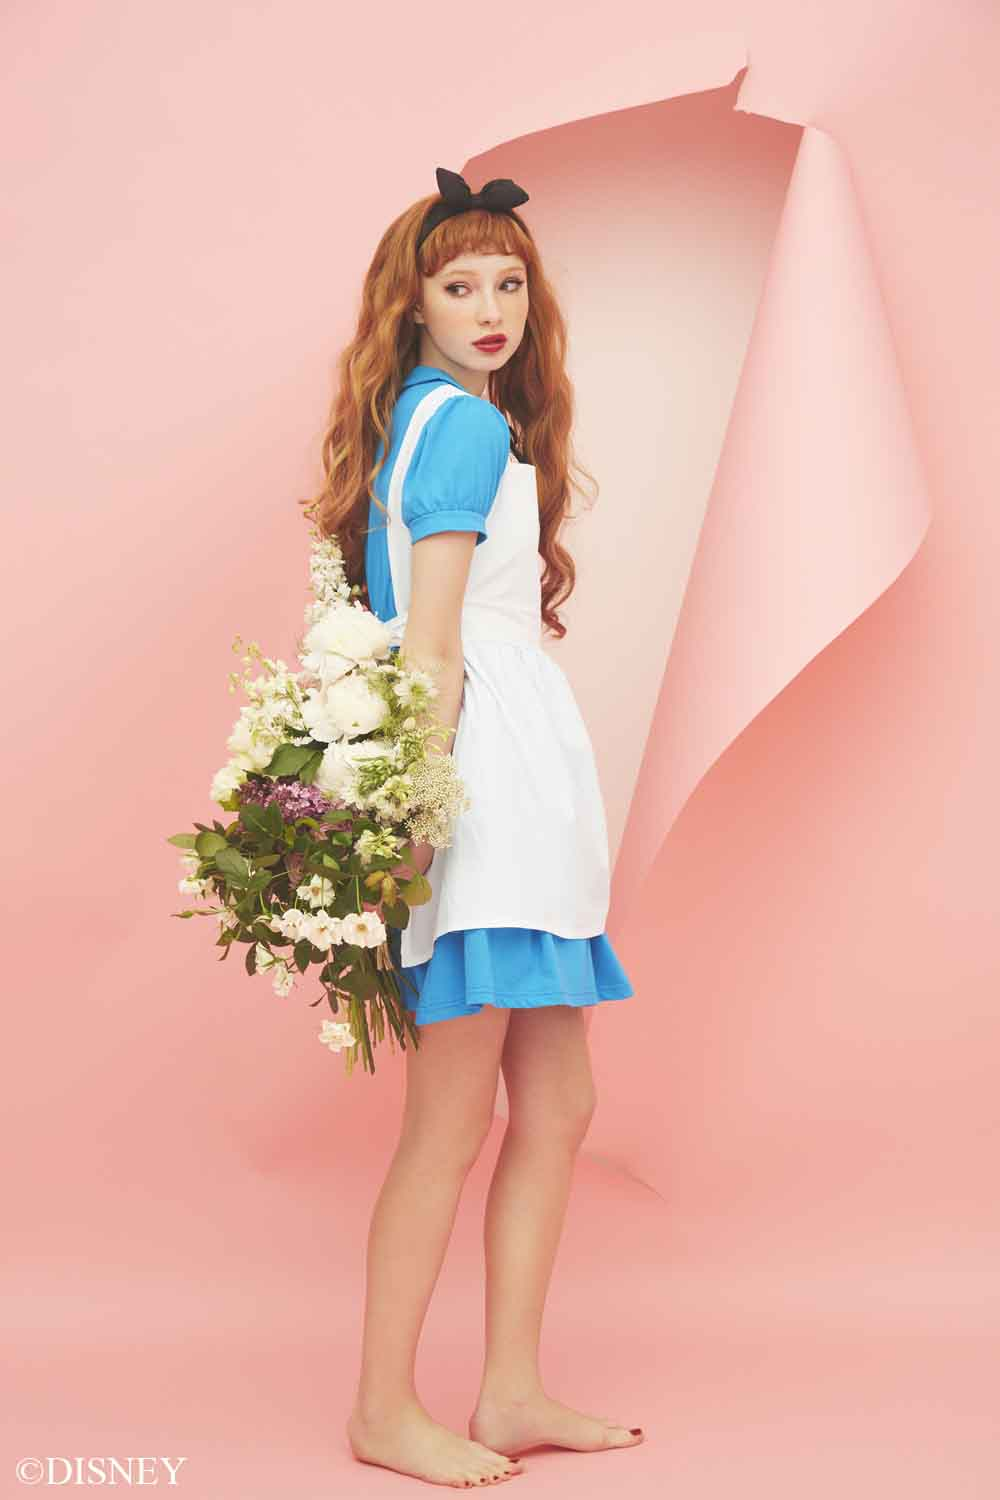 PEACH JOHN(ピーチ・ジョン) 「Alice in Wonderland Collection」 (4)